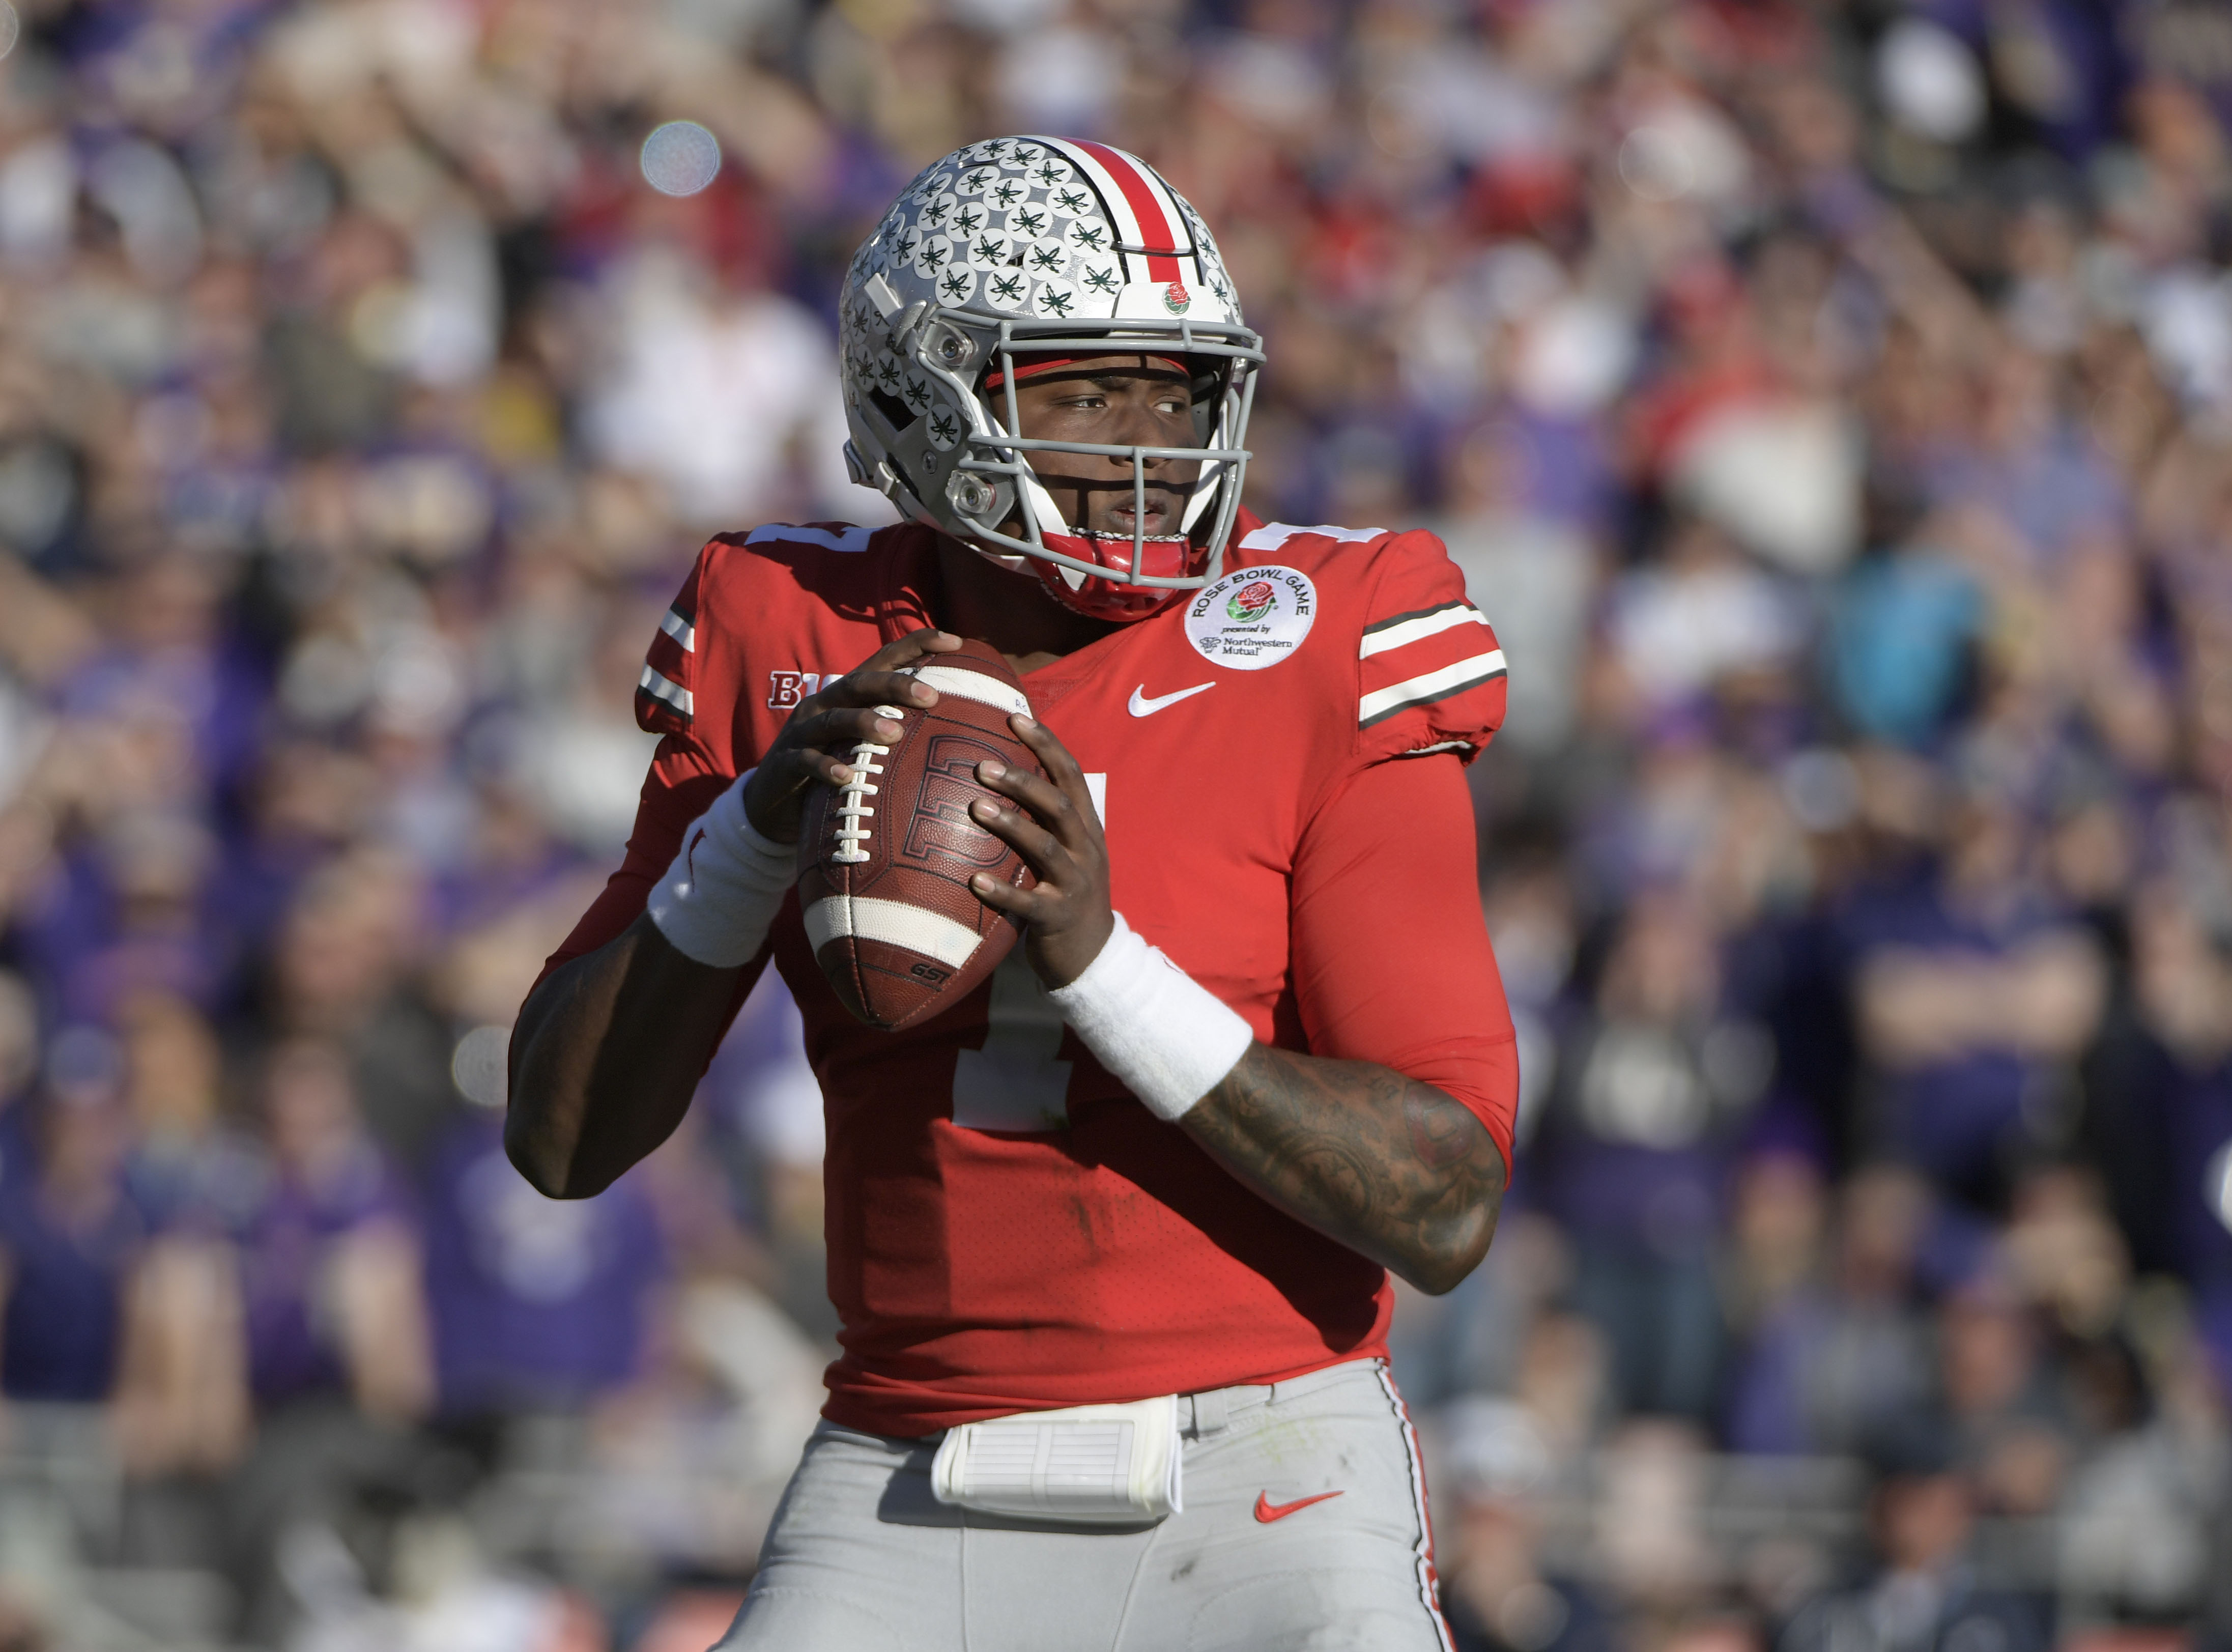 Could Dwayne Haskins' Inner Circle Affect His Draft Stock?